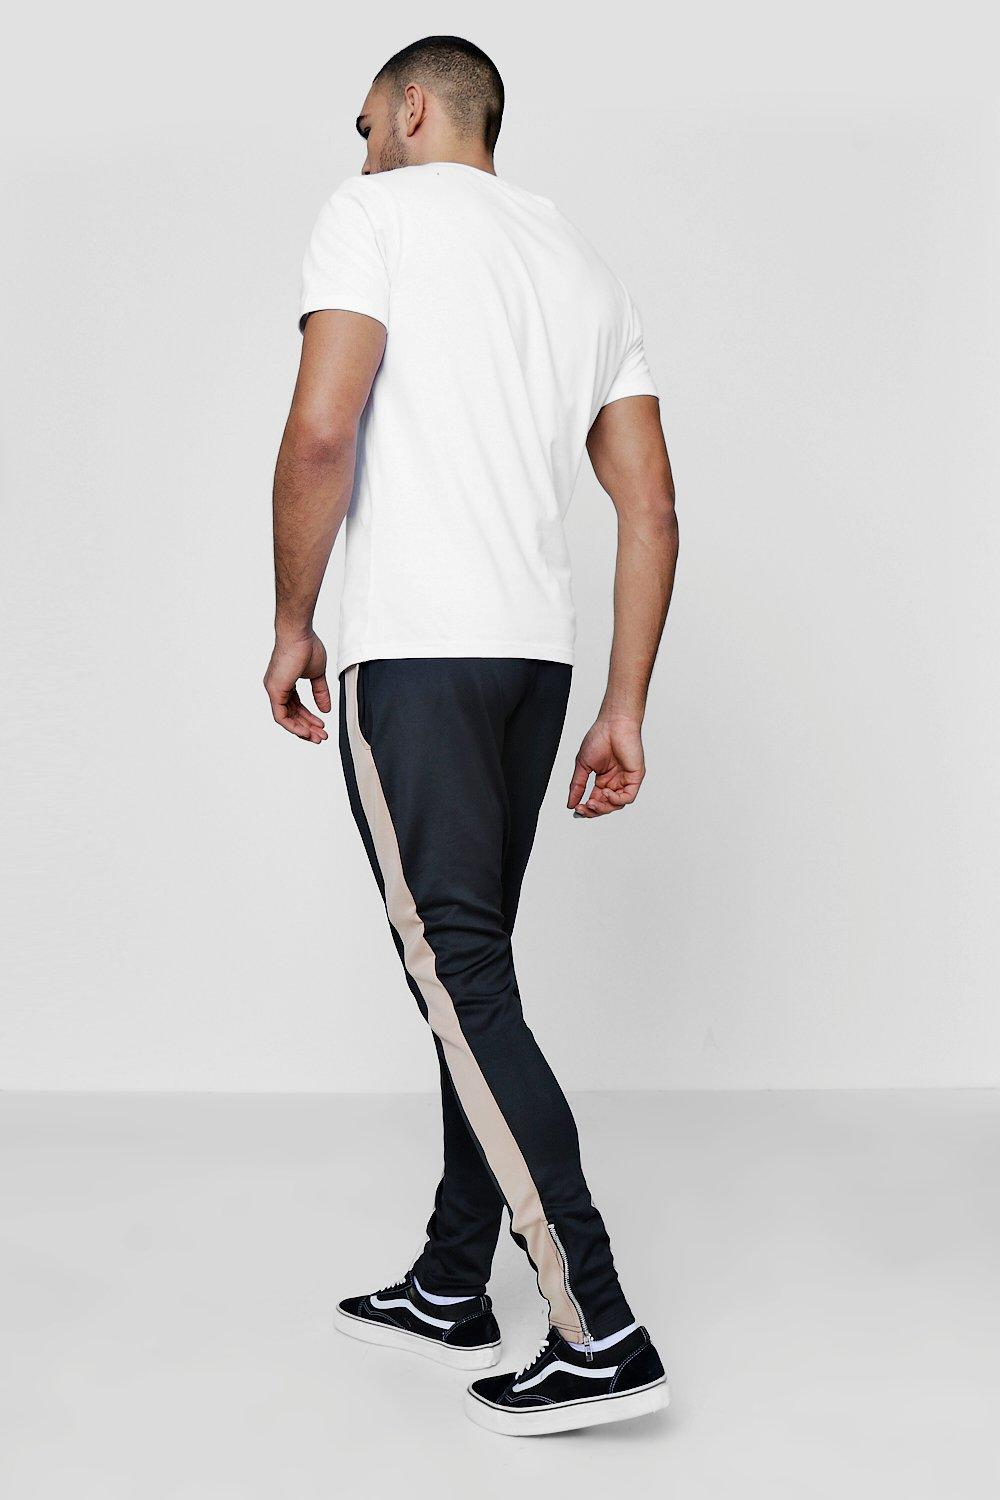 Joggers With black Tricot Panel Zip Fit Skinny qvtIx